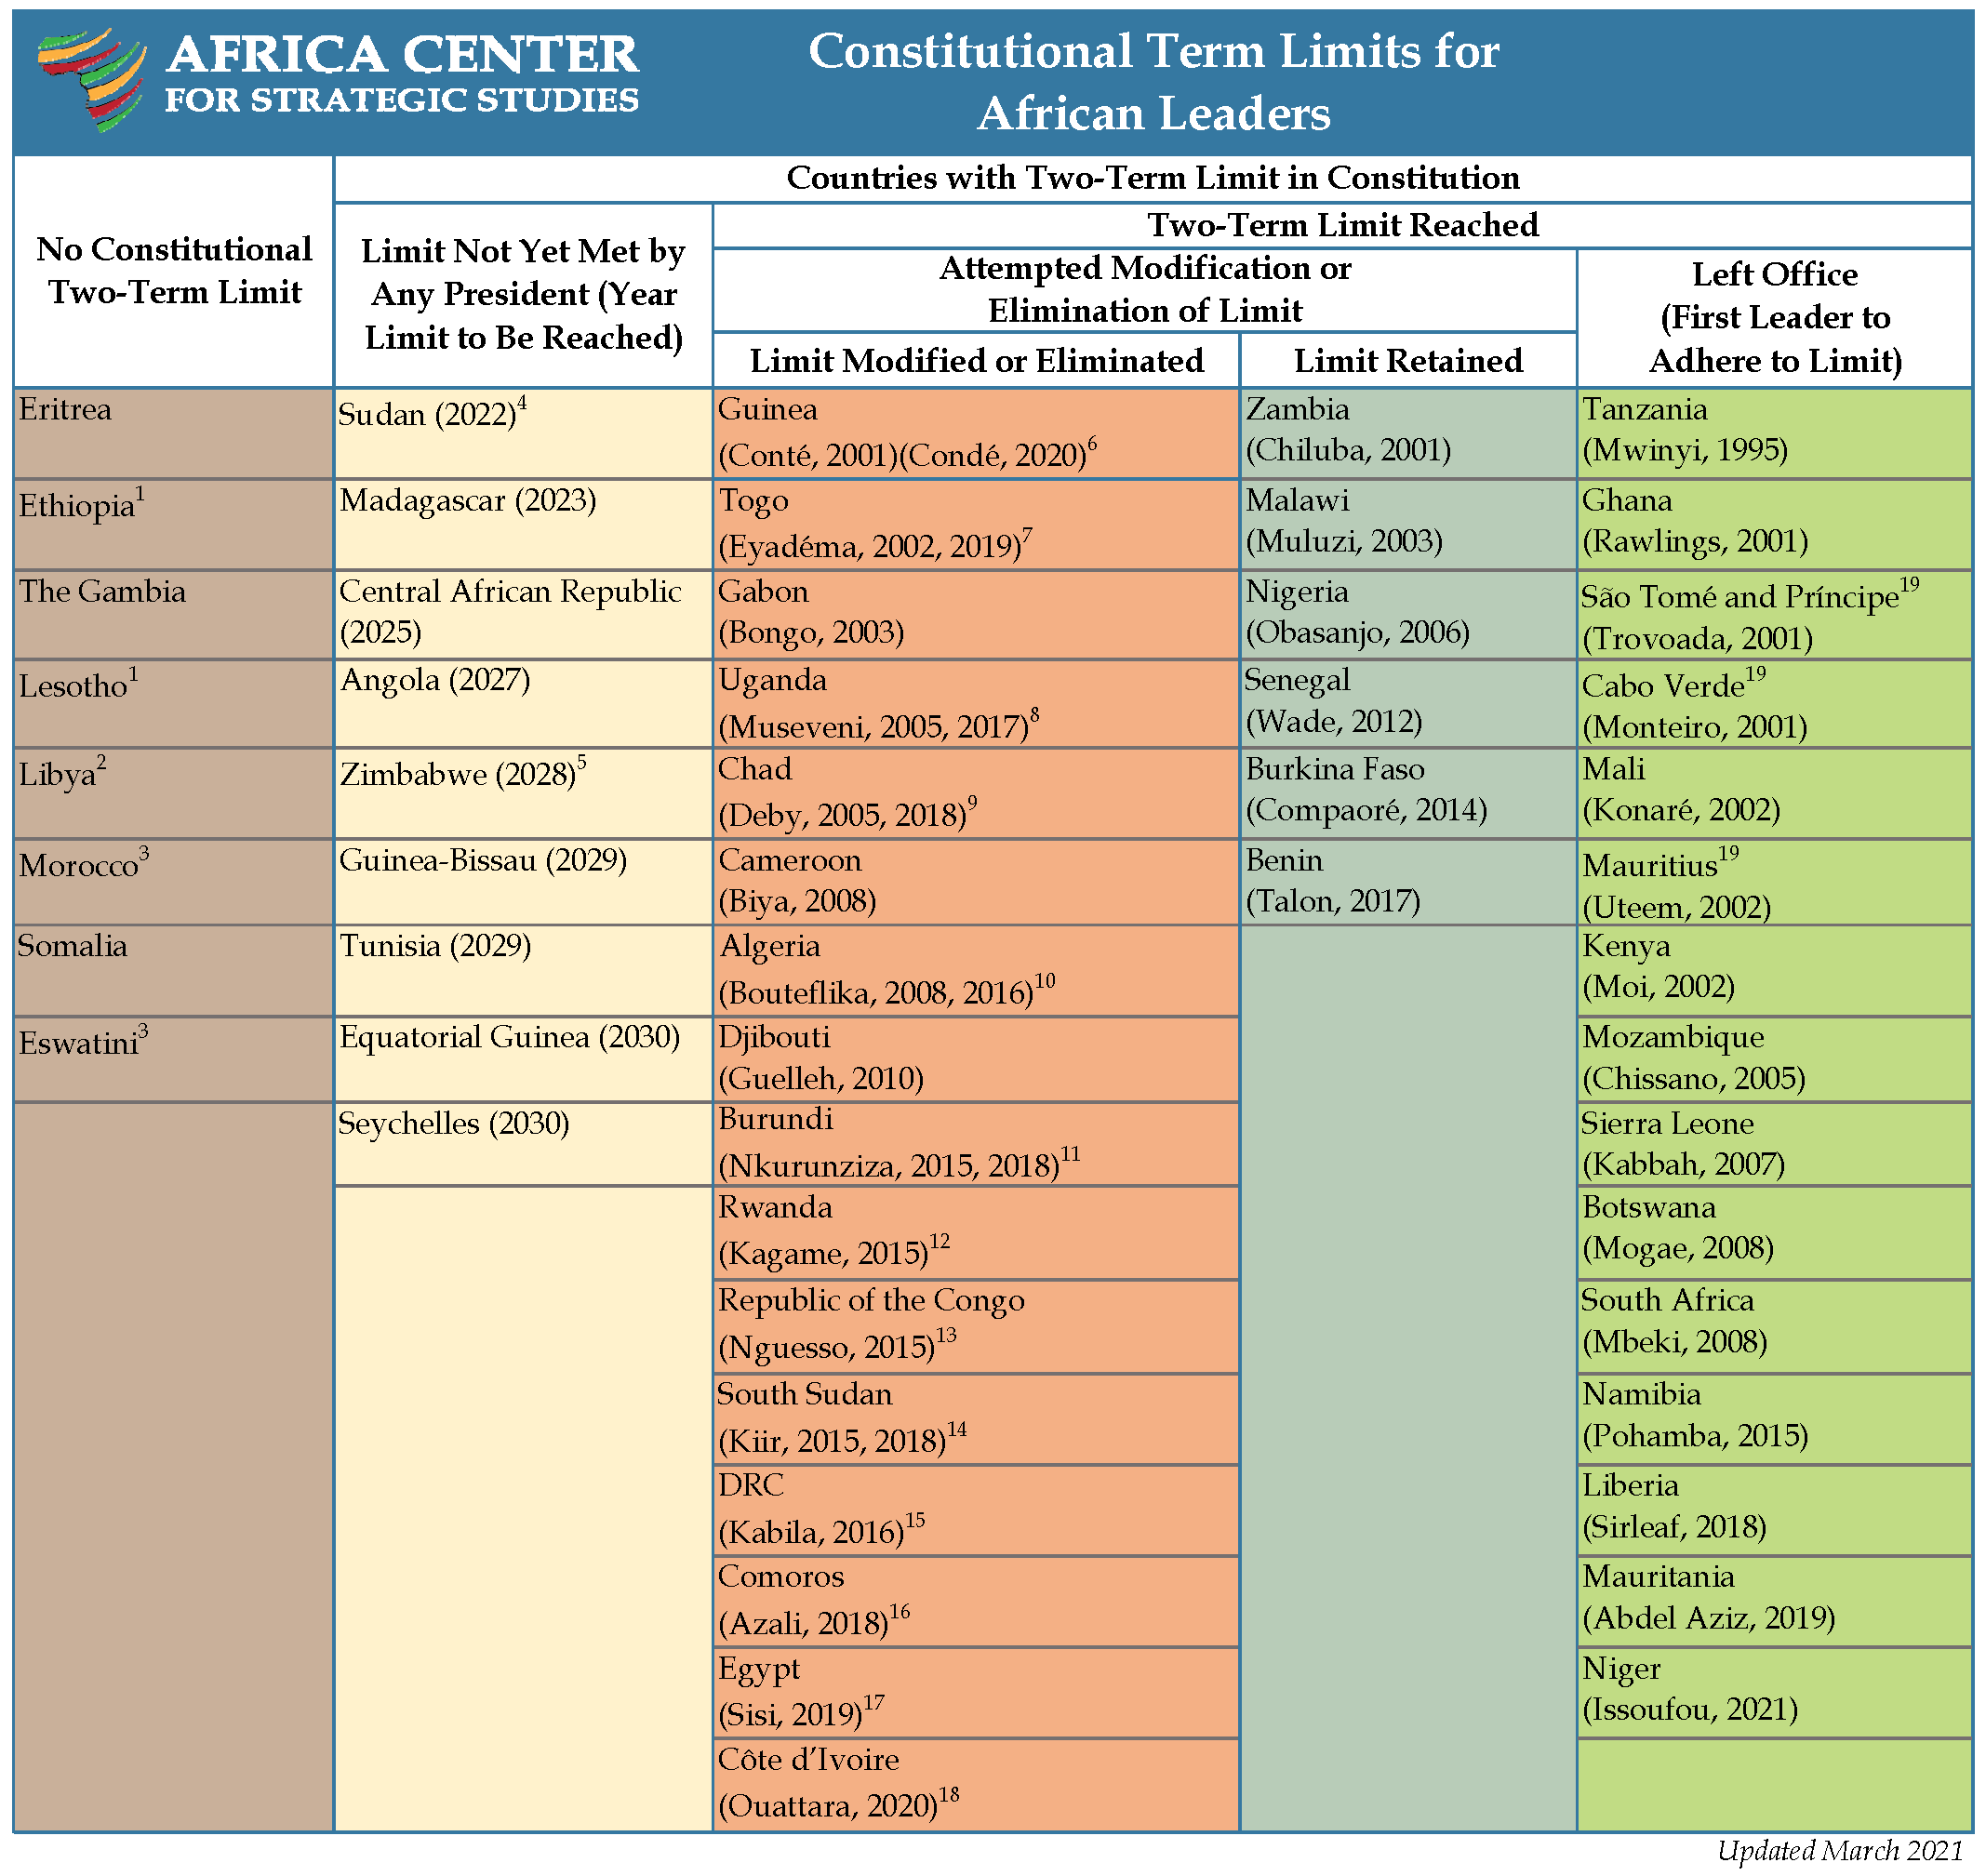 Constitutional Term Limits for African Leaders 2020 table